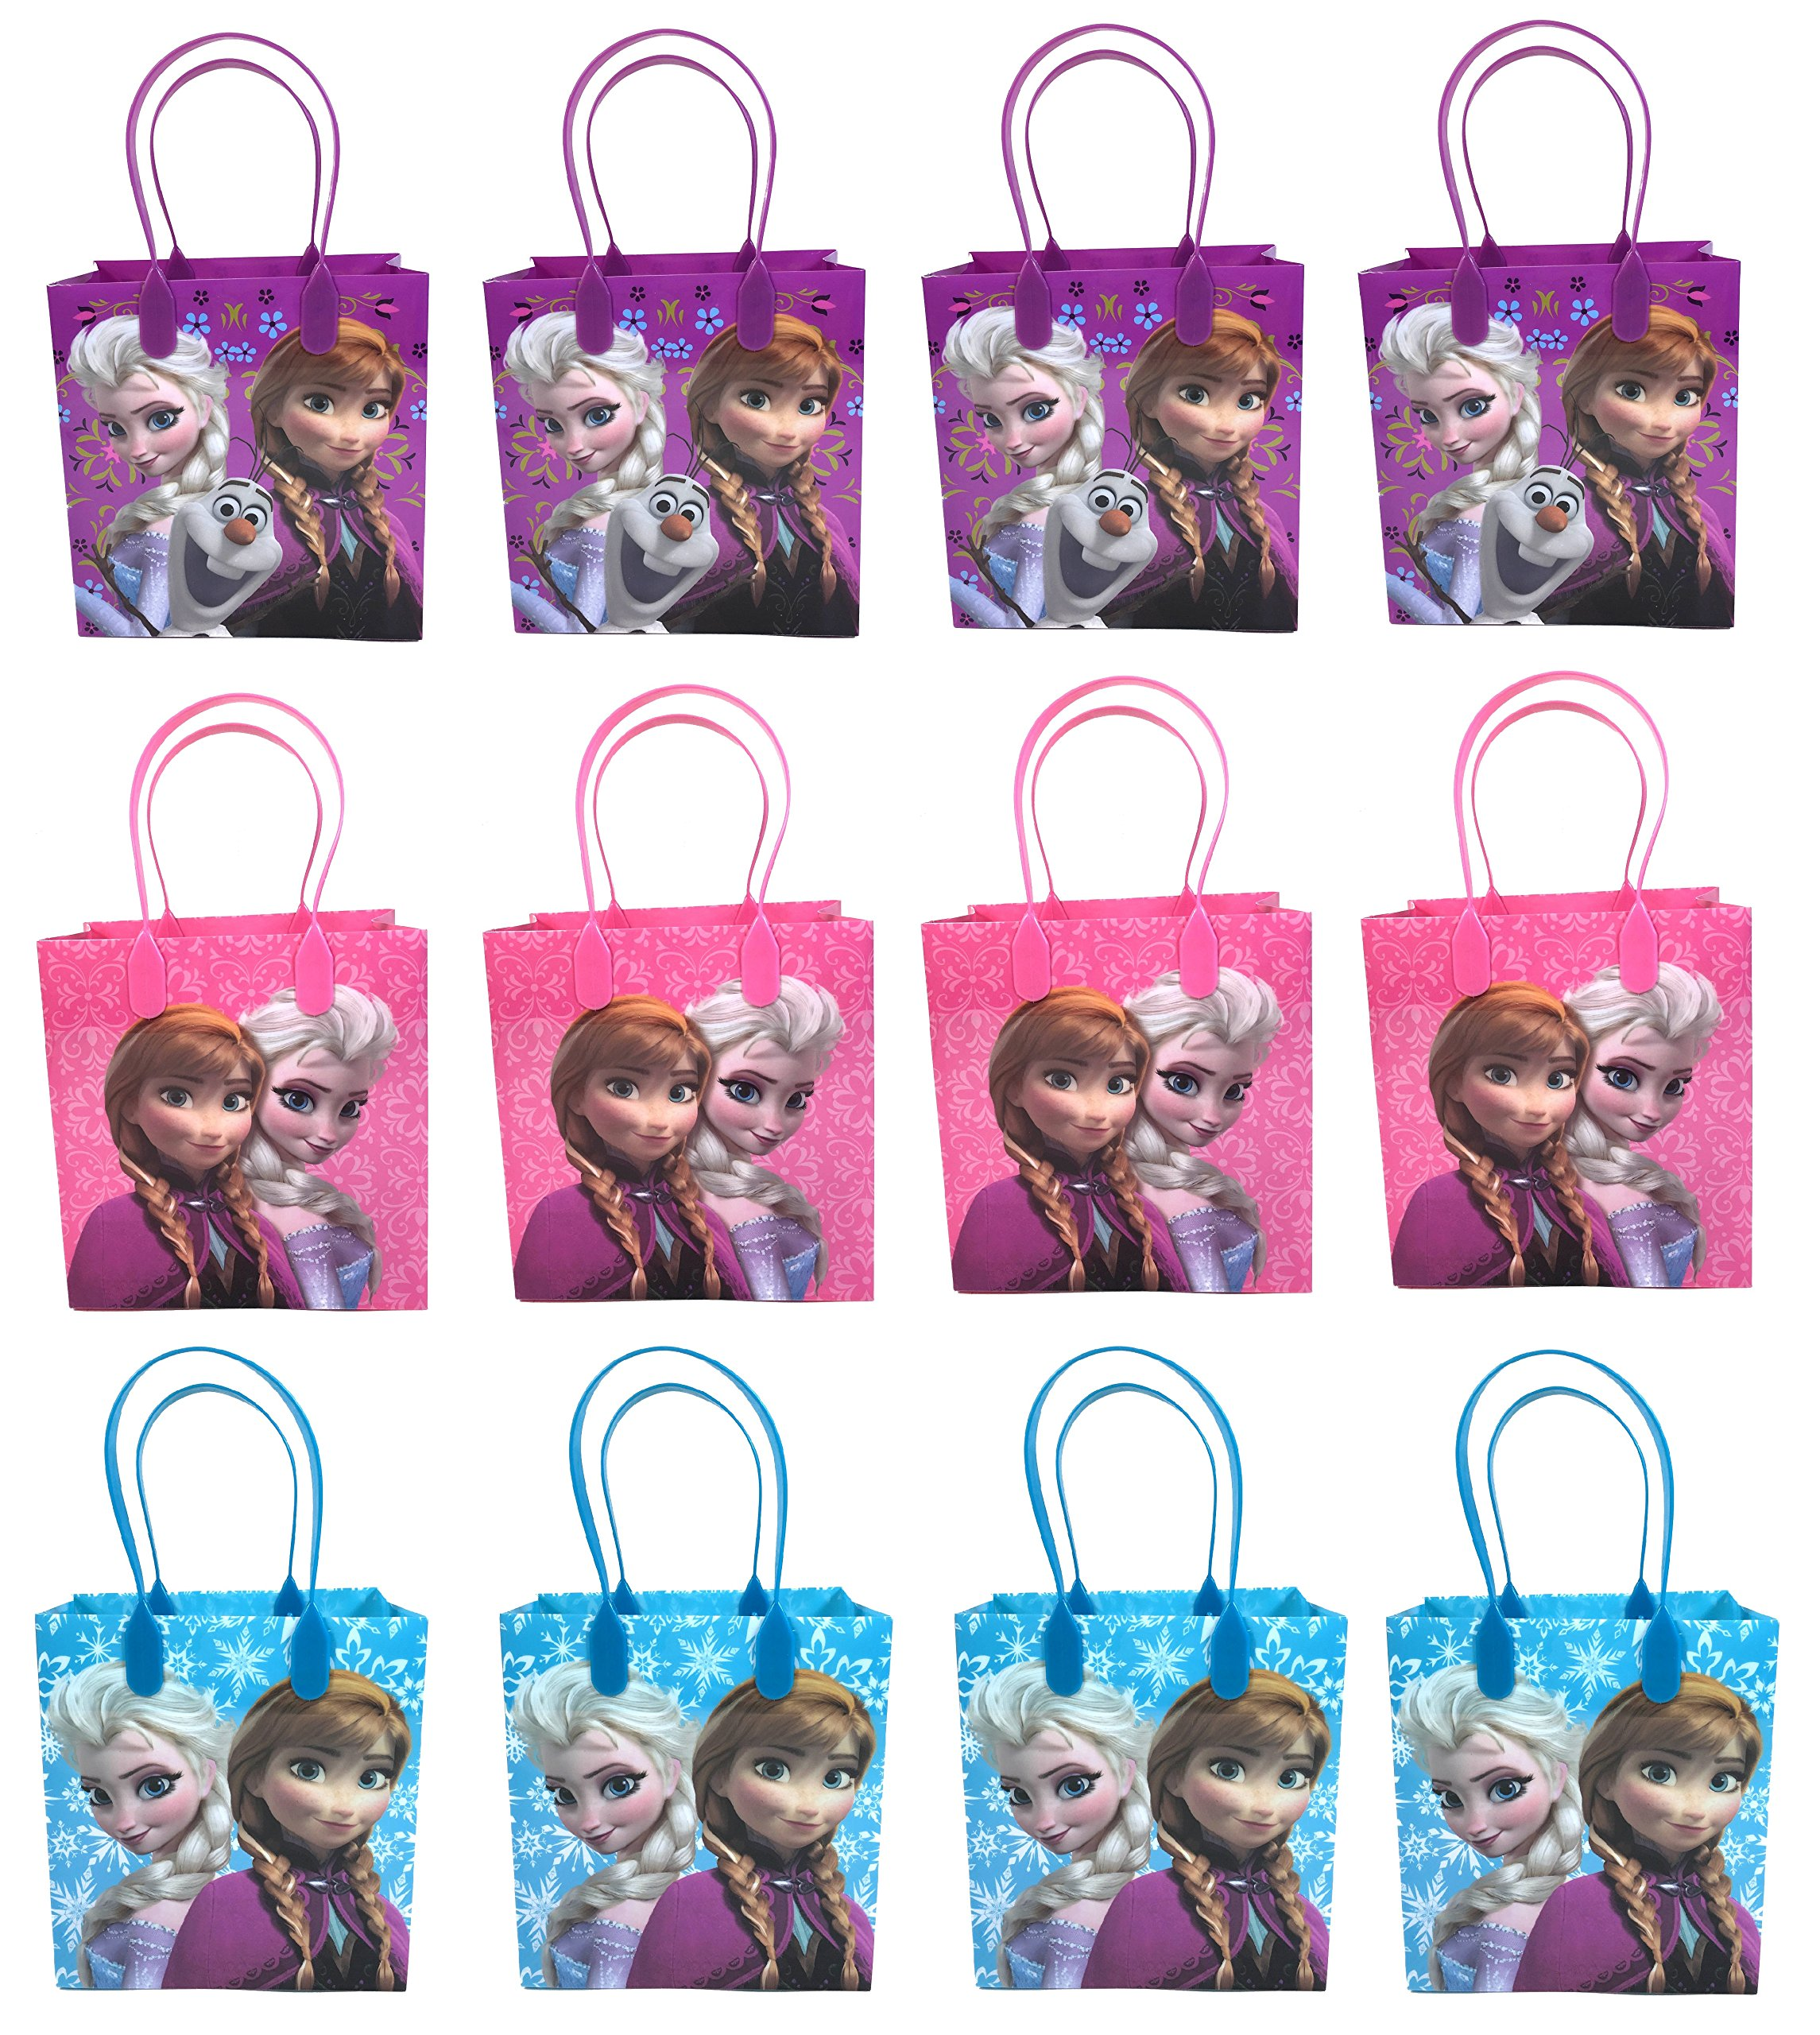 Disney Frozen Party Favor Goodie Small Gift Bags 12 by Disney